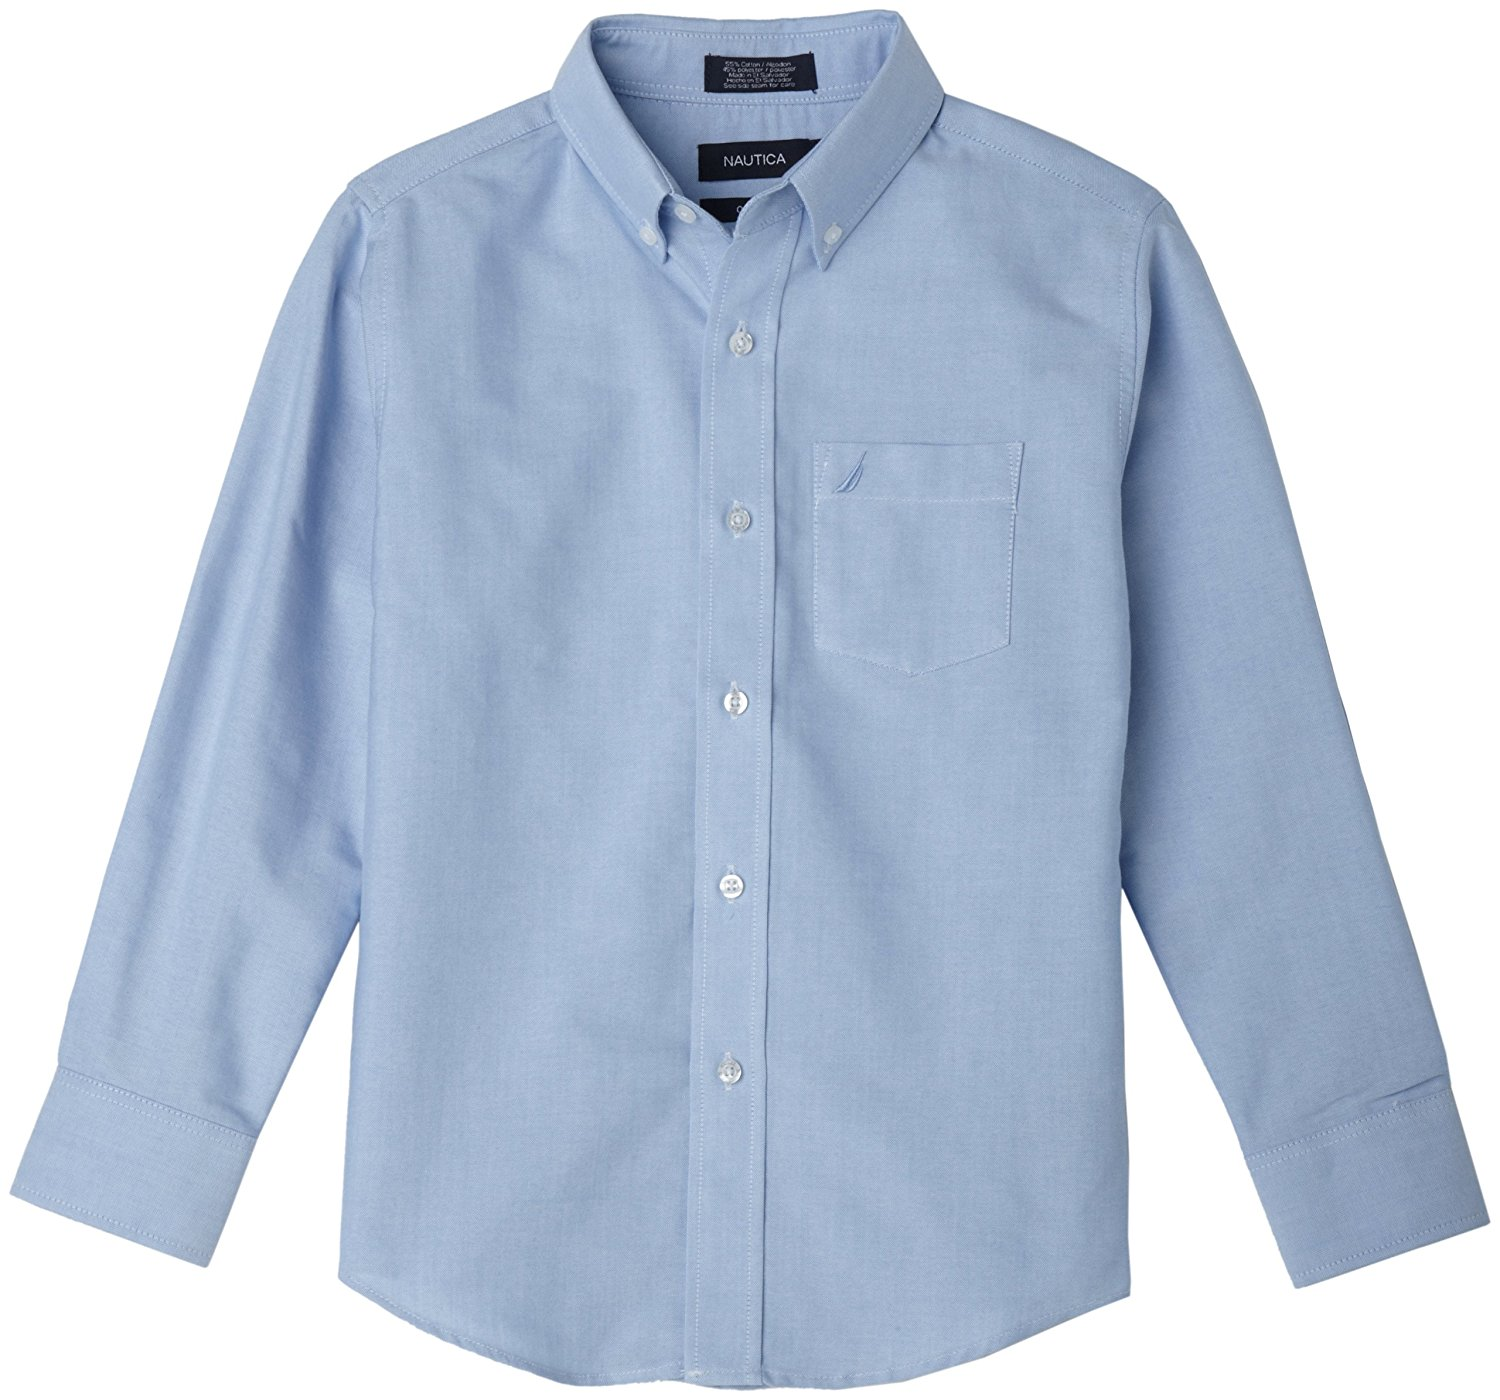 oxford shirt yes ... ghrbsxc